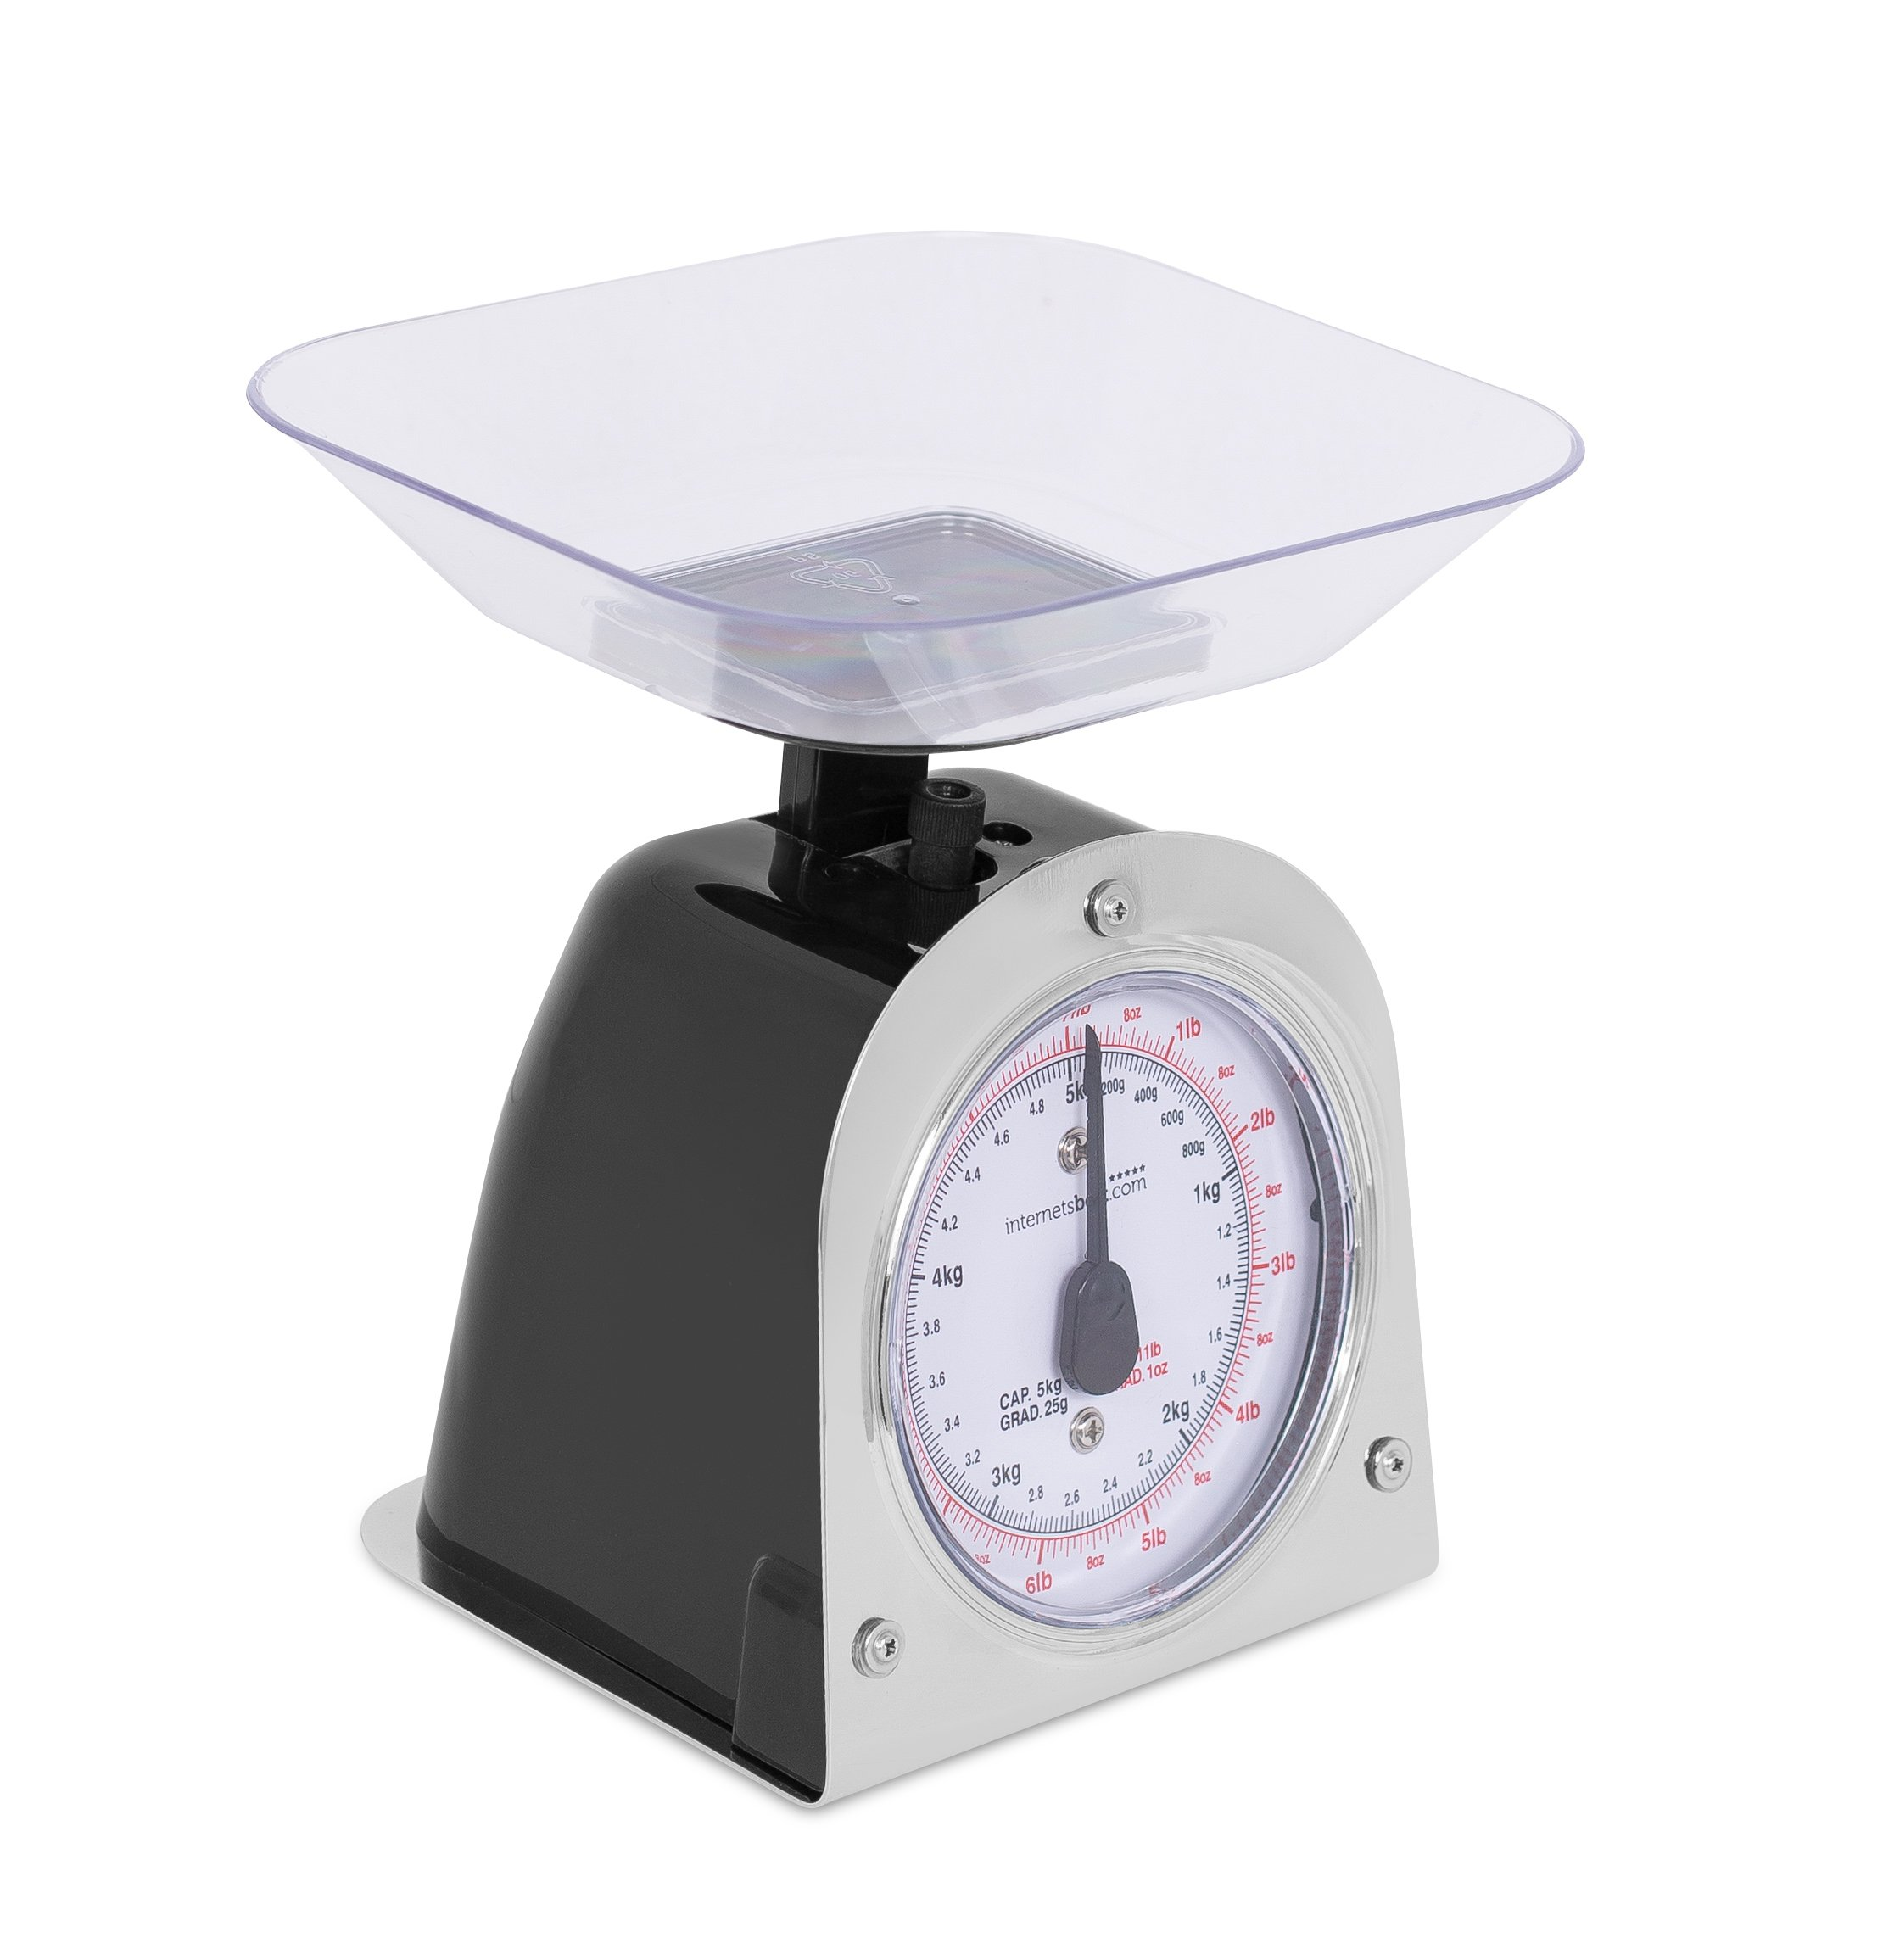 Internet's Best Mechanical Kitchen Food Weight Scale with Bowl | Accurate Measurements | Weighs Up 11 Lbs | 1KG - 5KG by Internet's Best (Image #4)